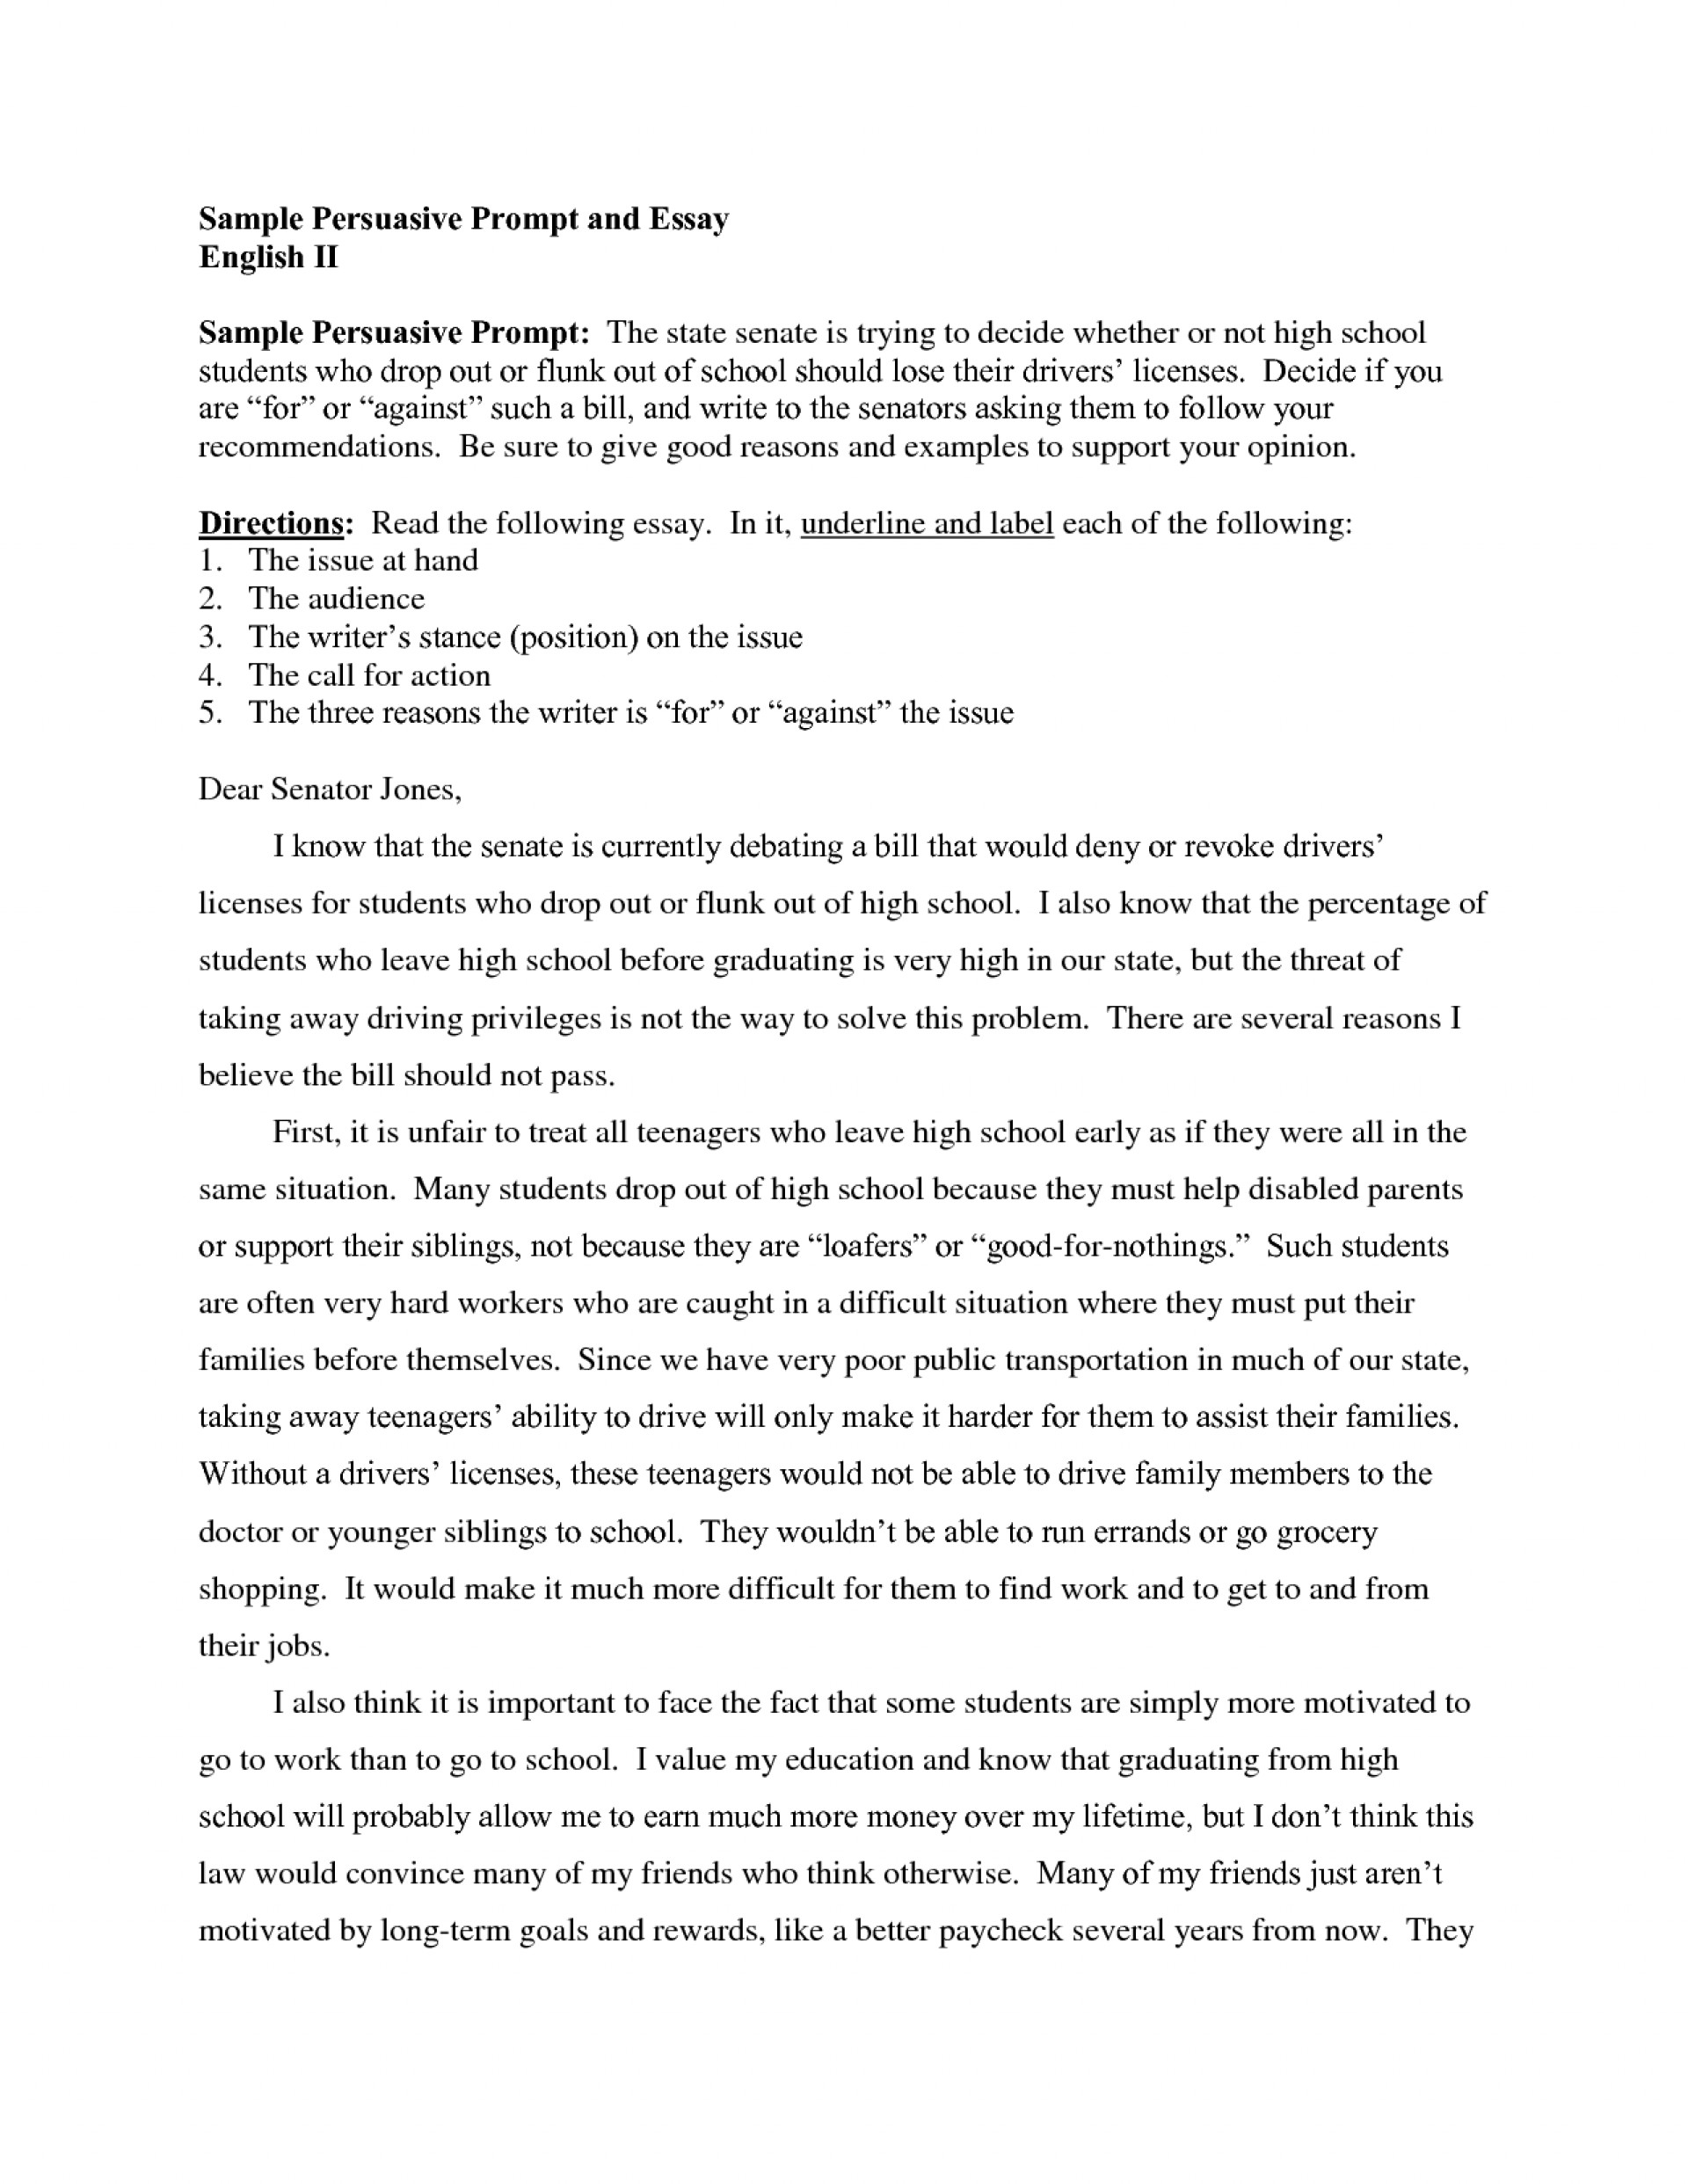 013 Research Paper Easy Topic Persuasive Essay Topics For High School Sample Ideas Highschool Students Good Prompt Funny Fun List Of Seniors Writing English Sensational Biology Science 1920